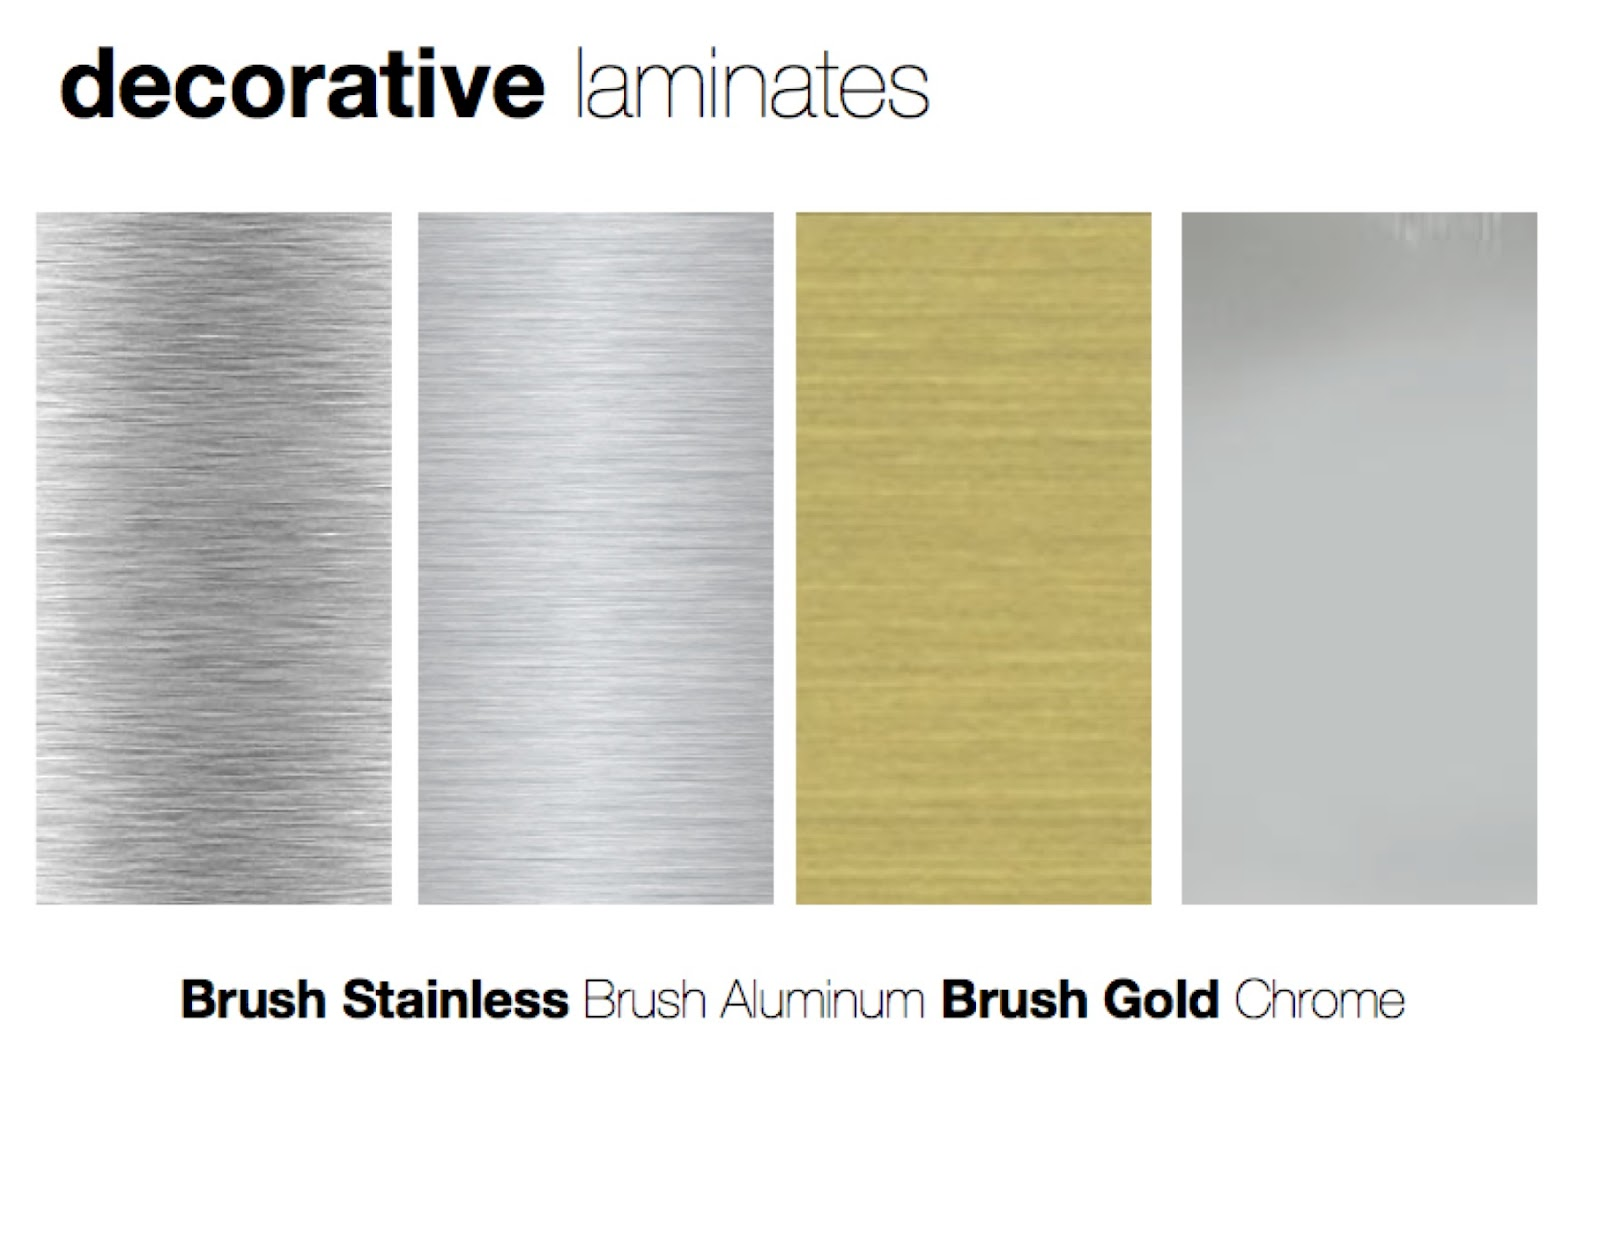 Brushed Aluminum Brush Aluminum Brush